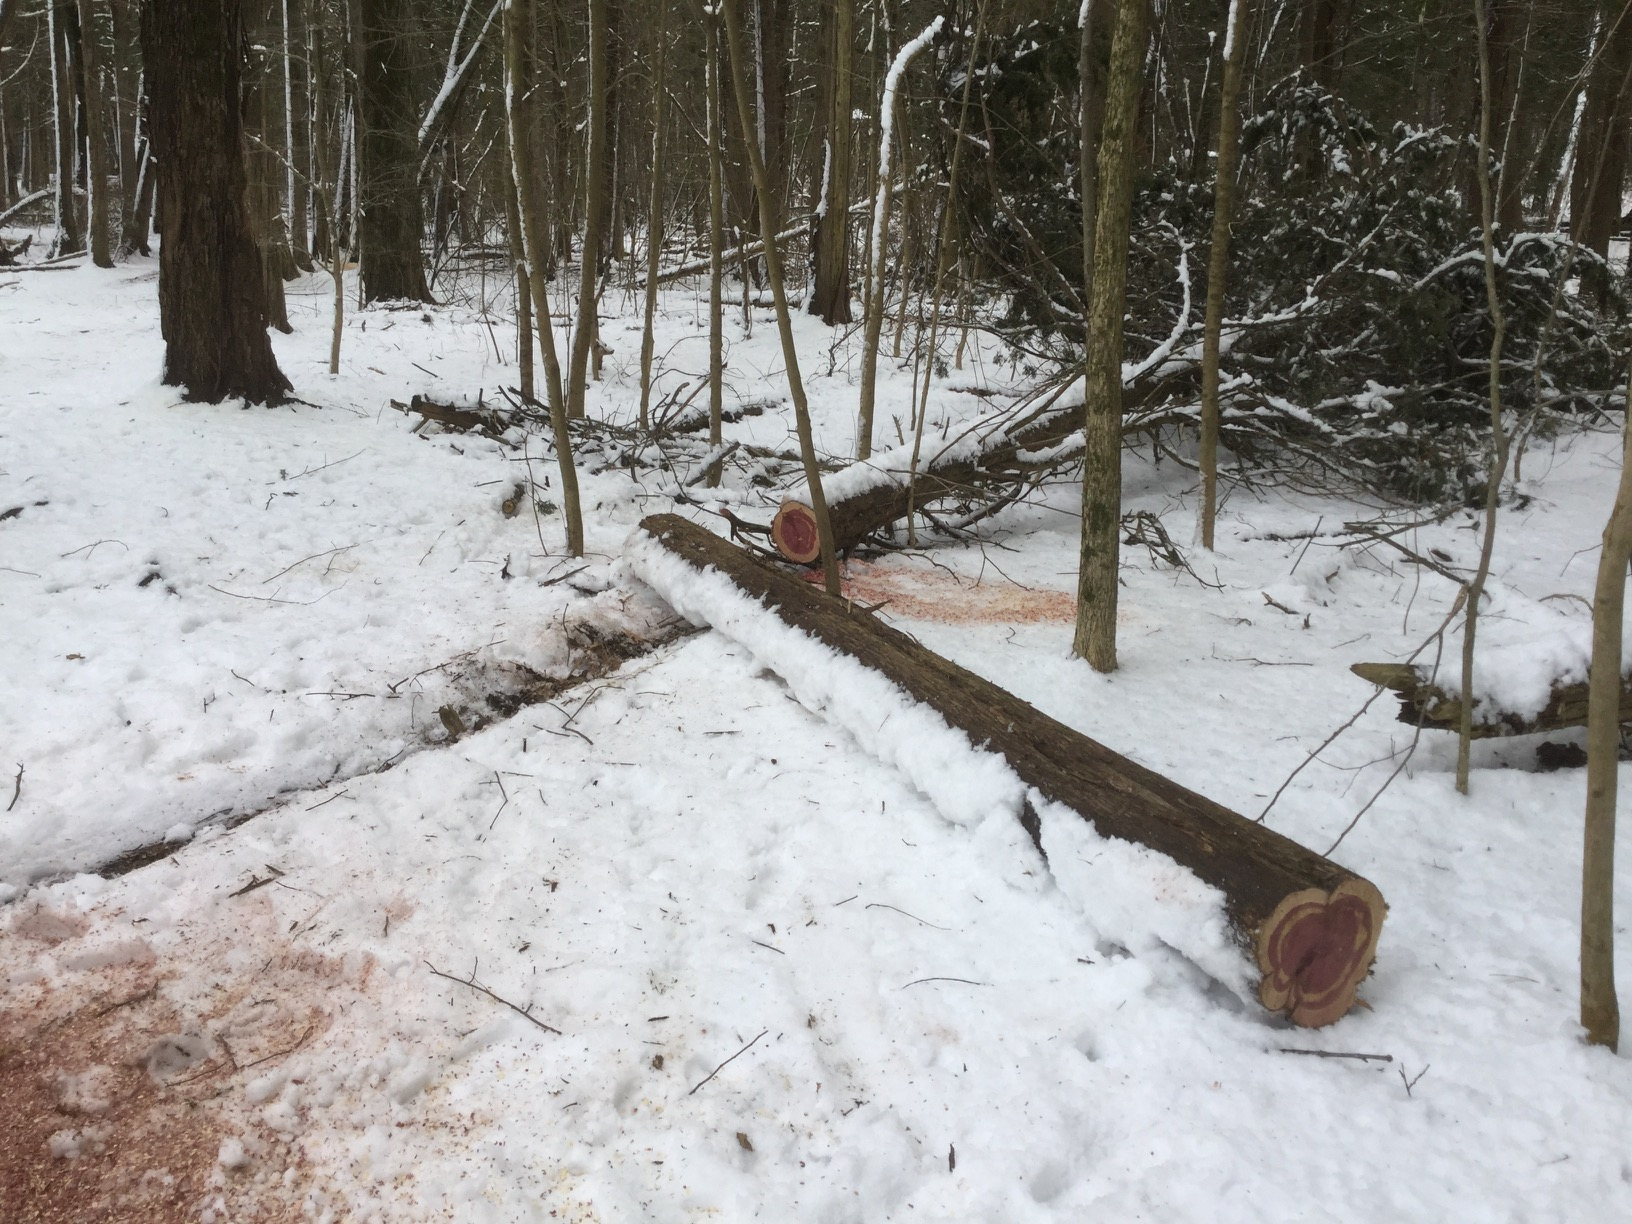 two long sawn logs of tree with red and tan wood on snowy ground